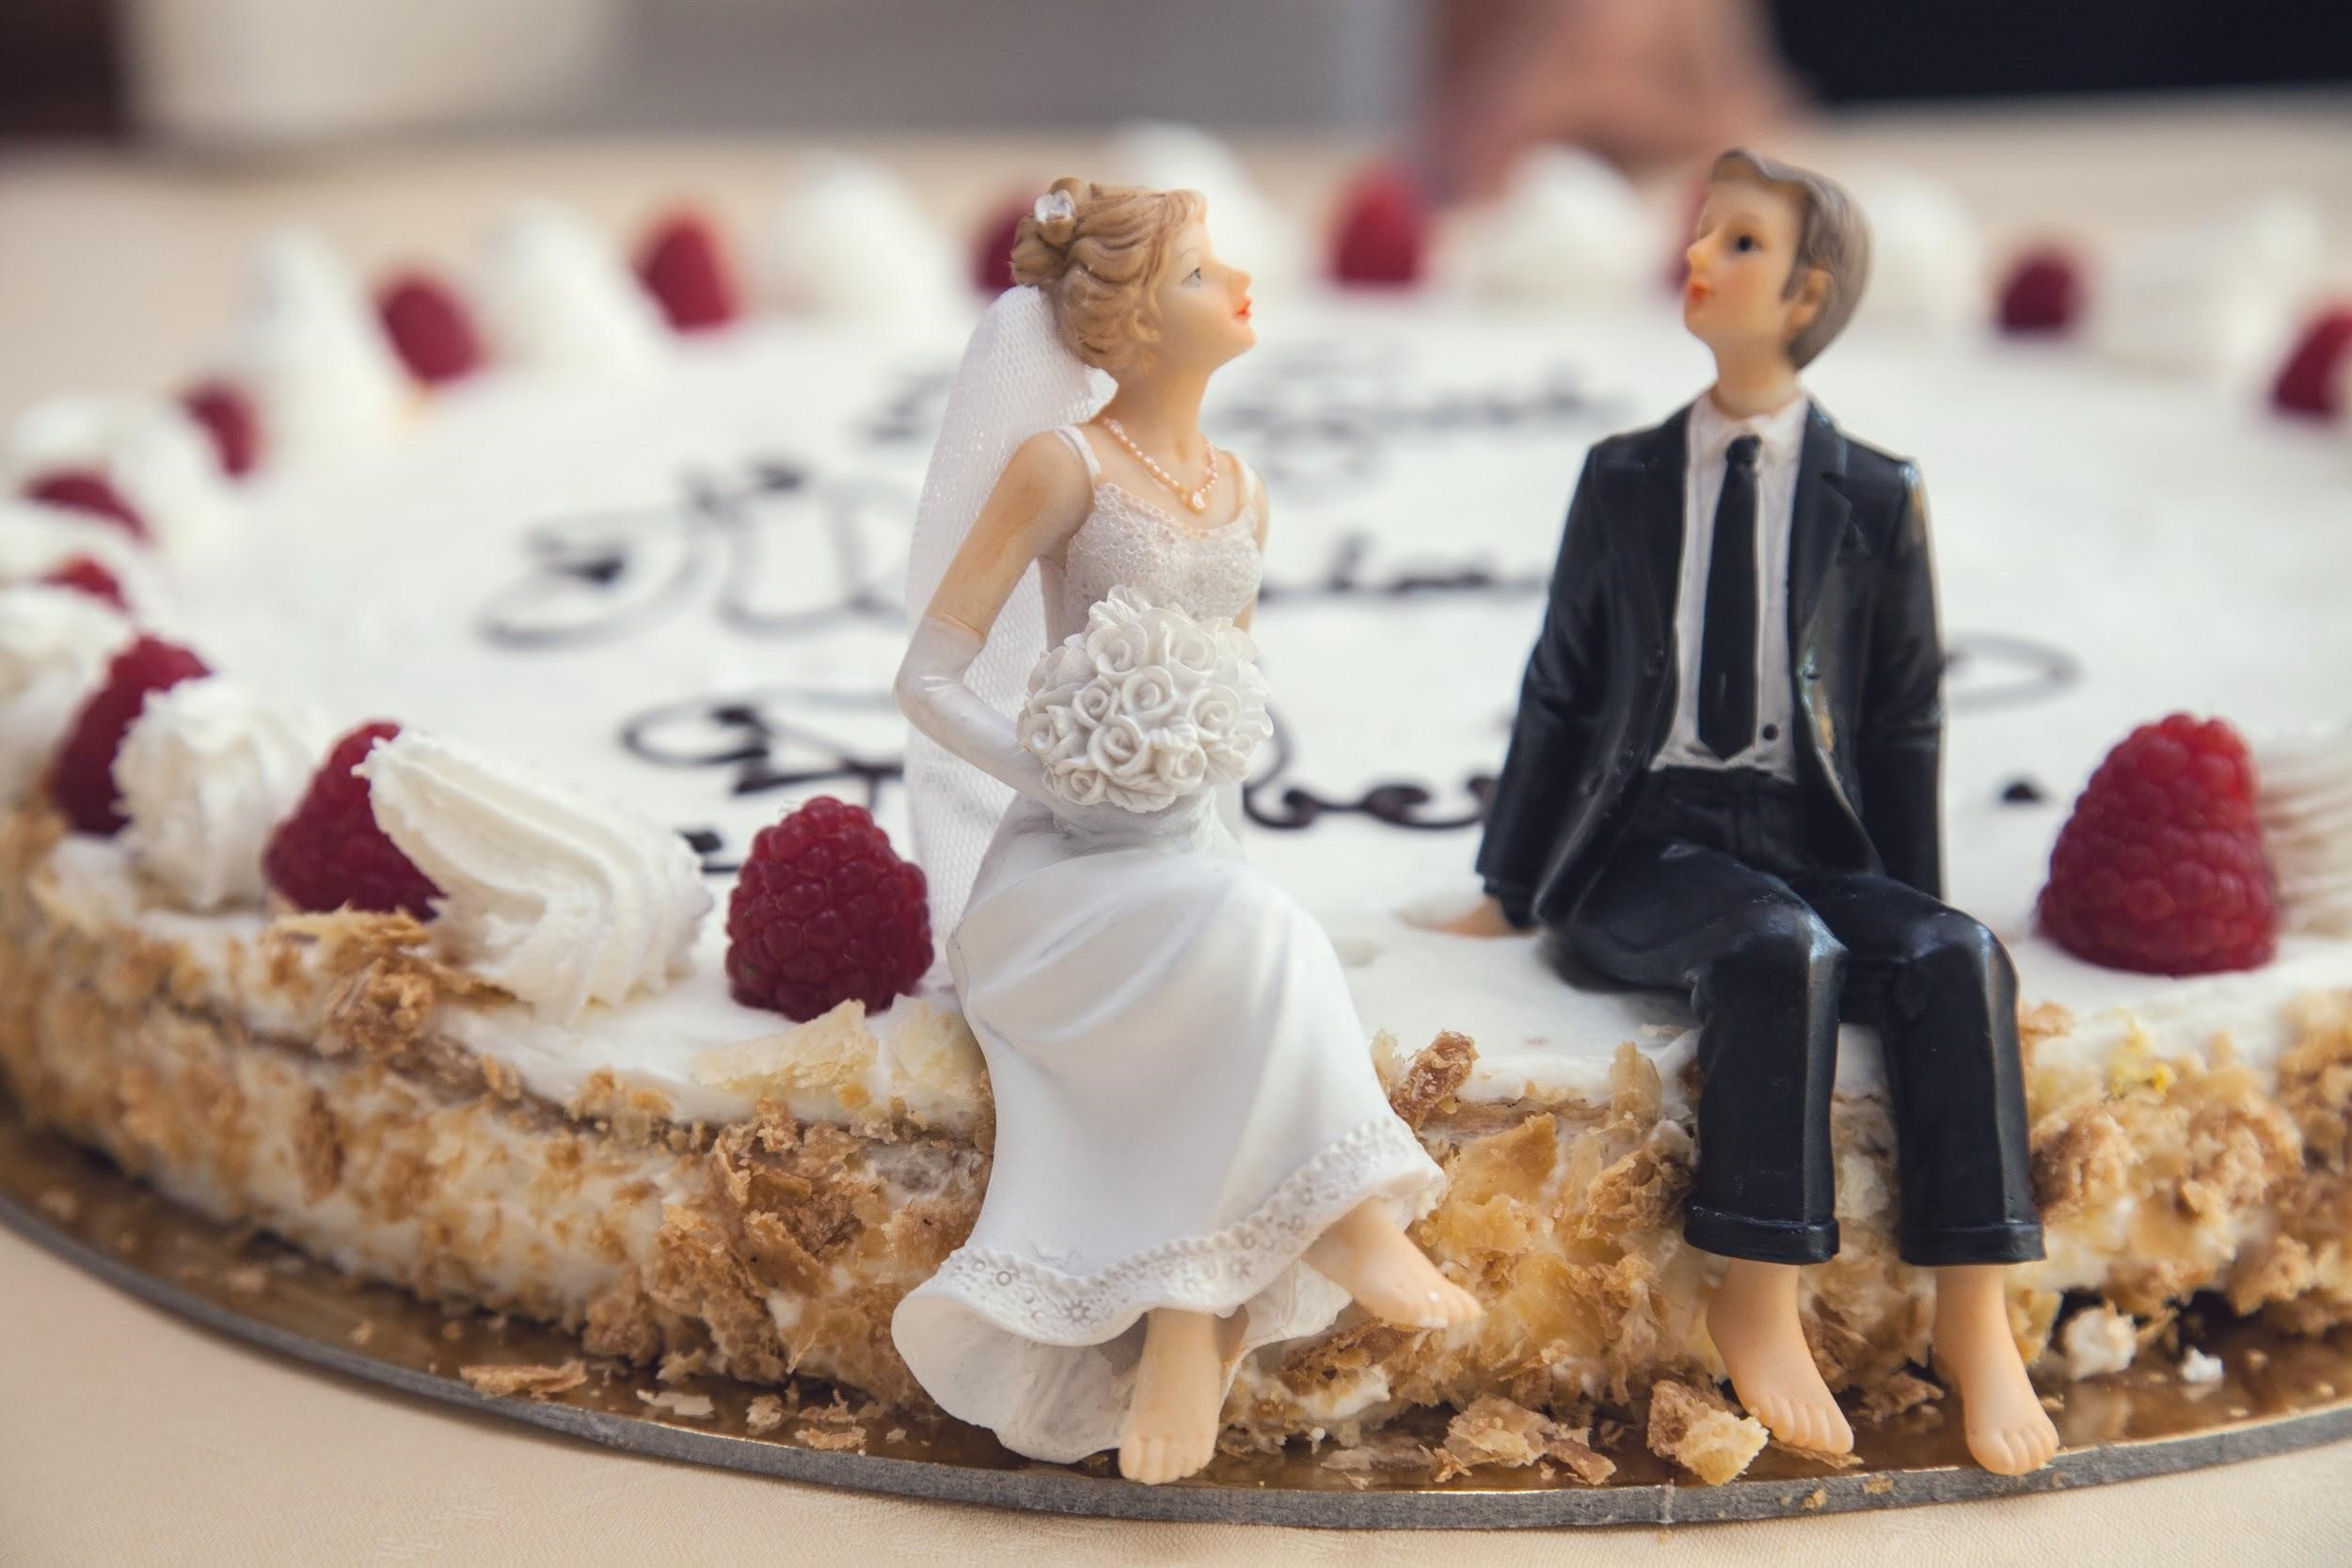 I Do 2: Planning Your Second Wedding